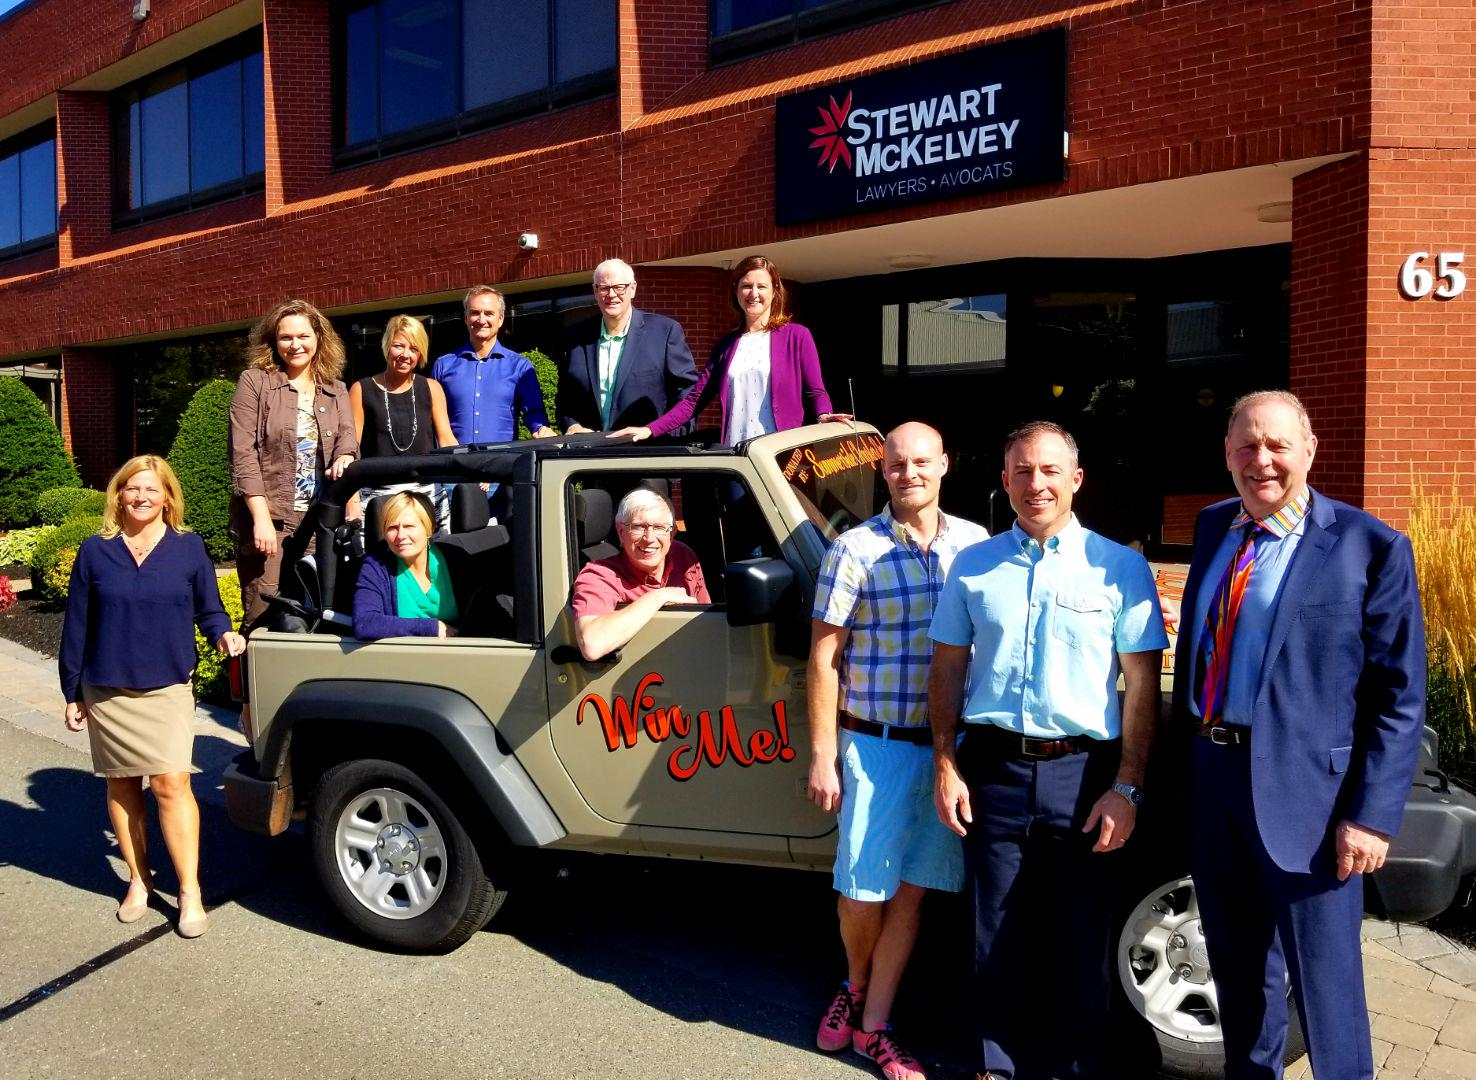 Stewart McKelvey Law Firm donates Jeep it won back to PCH Foundation